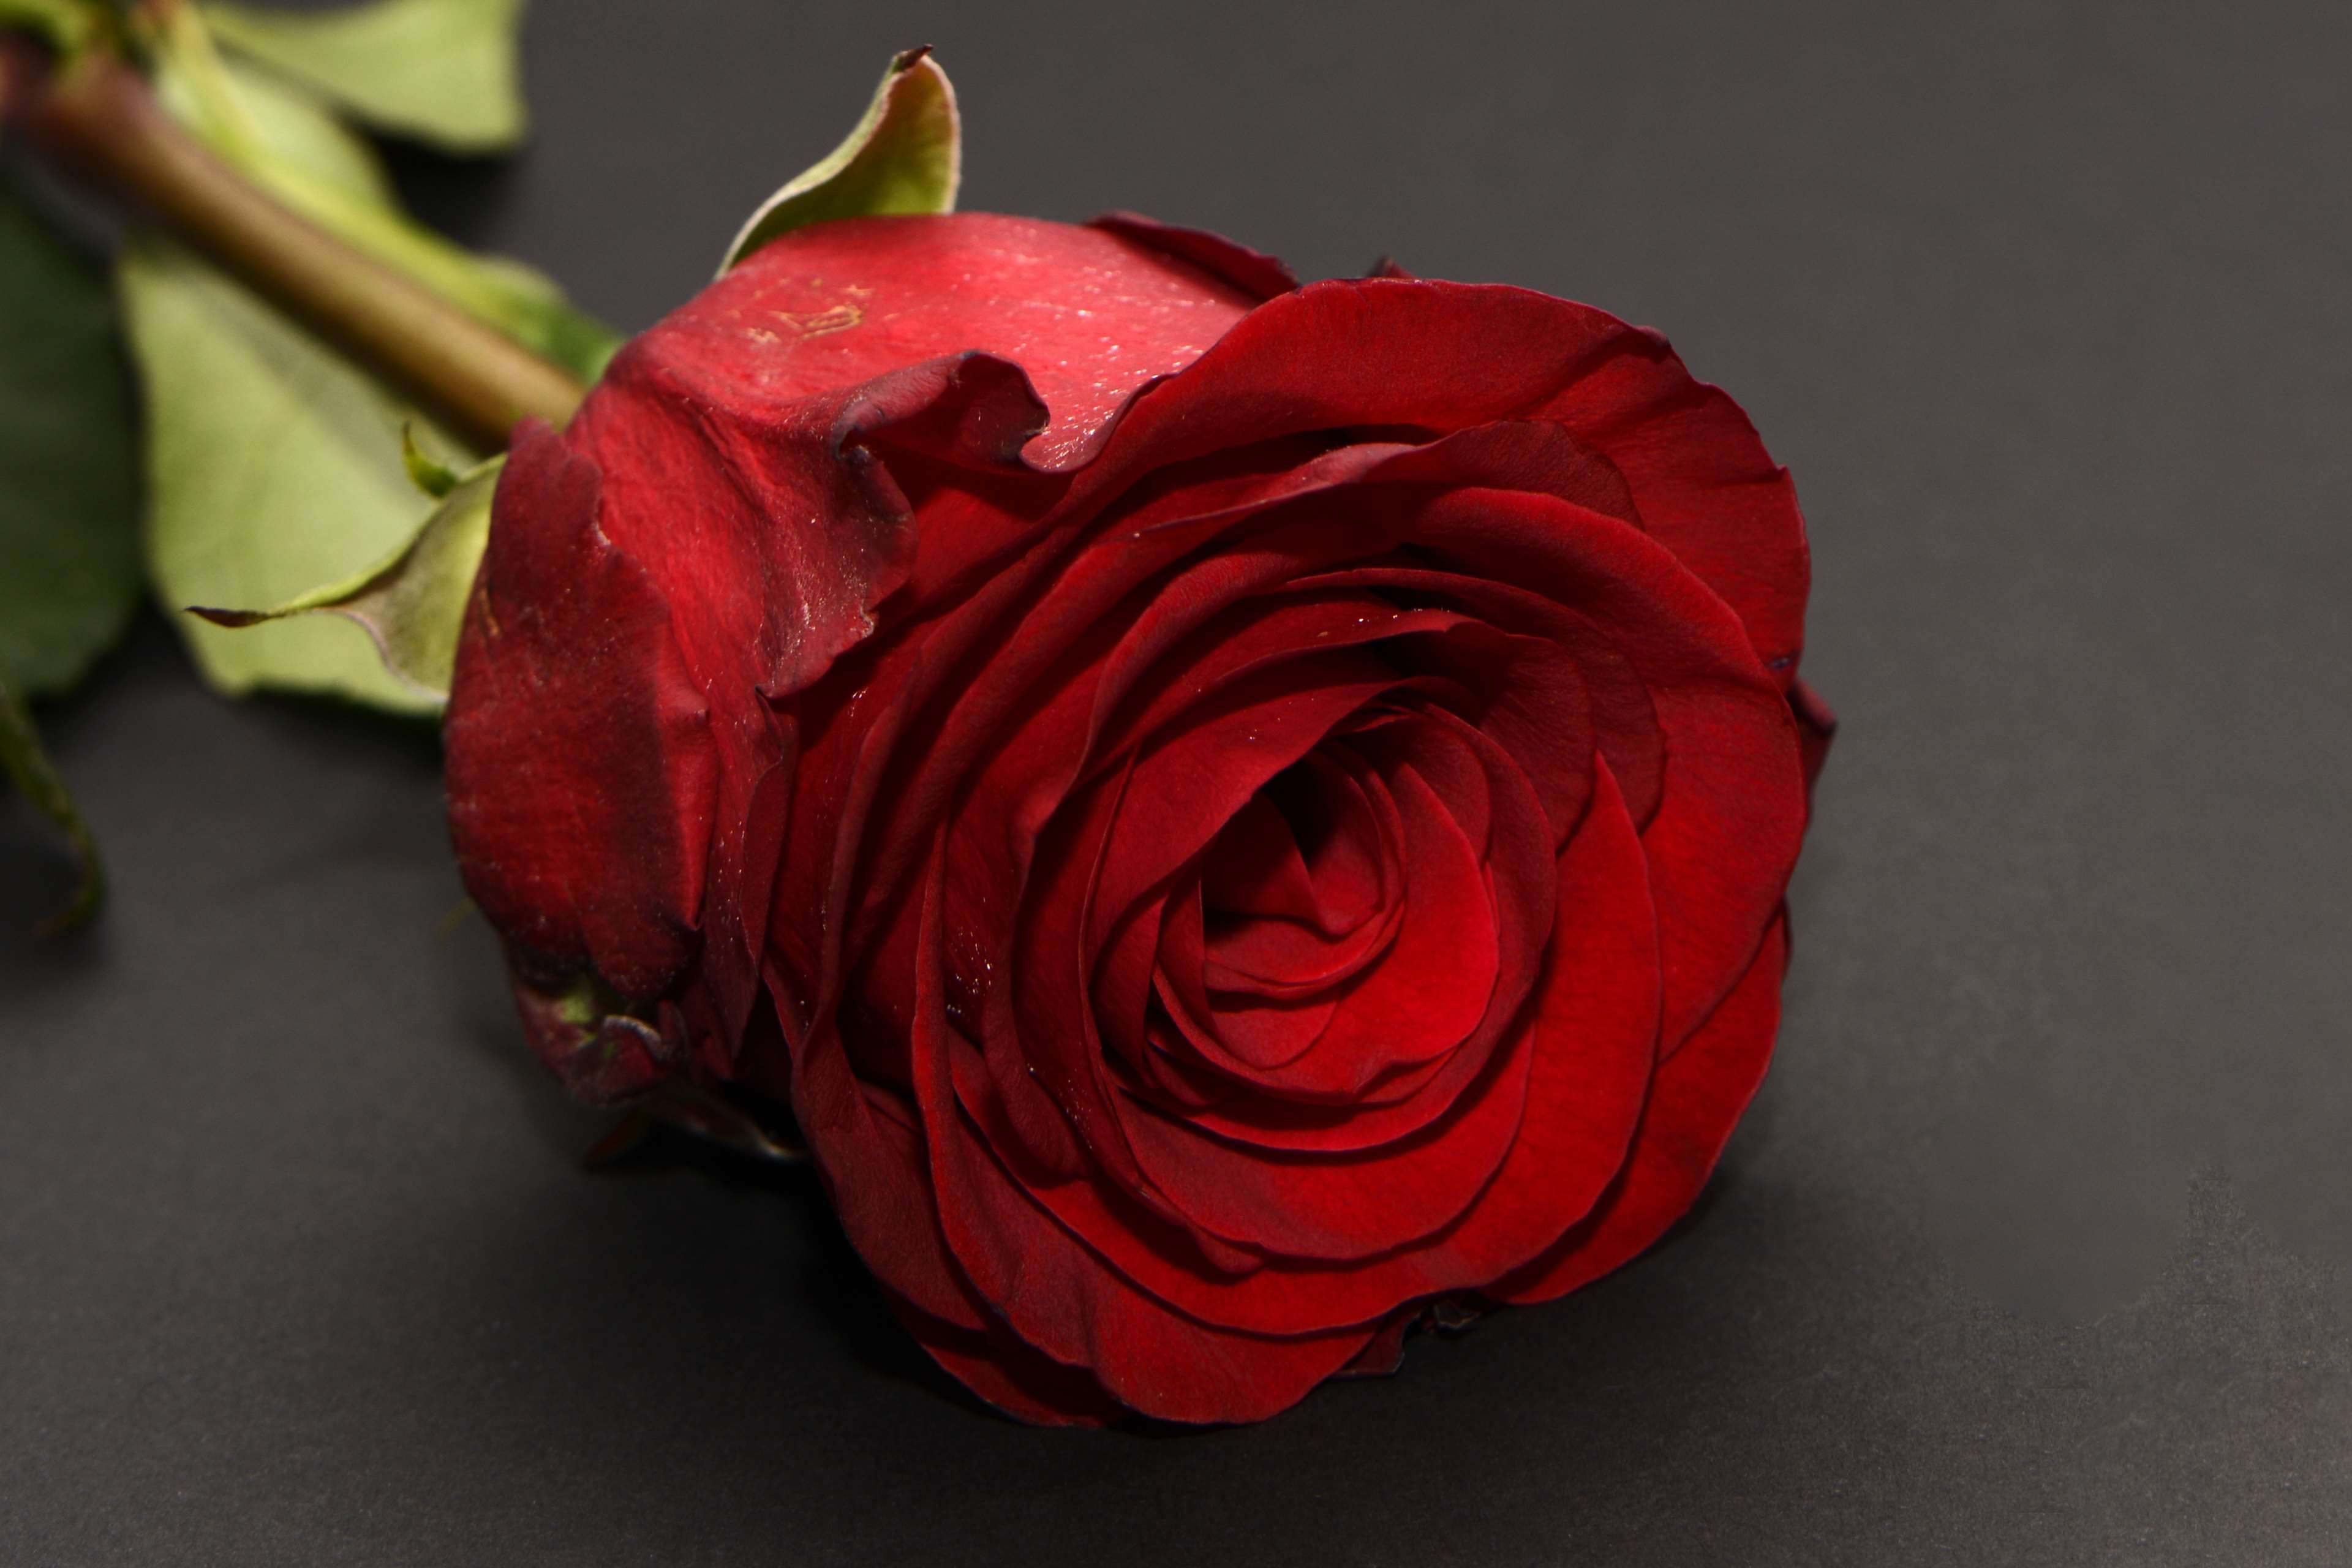 Red Roses Hq Wallpaper Wide Love Romantic Rose Flowers 737609 Hd Wallpaper Backgrounds Download